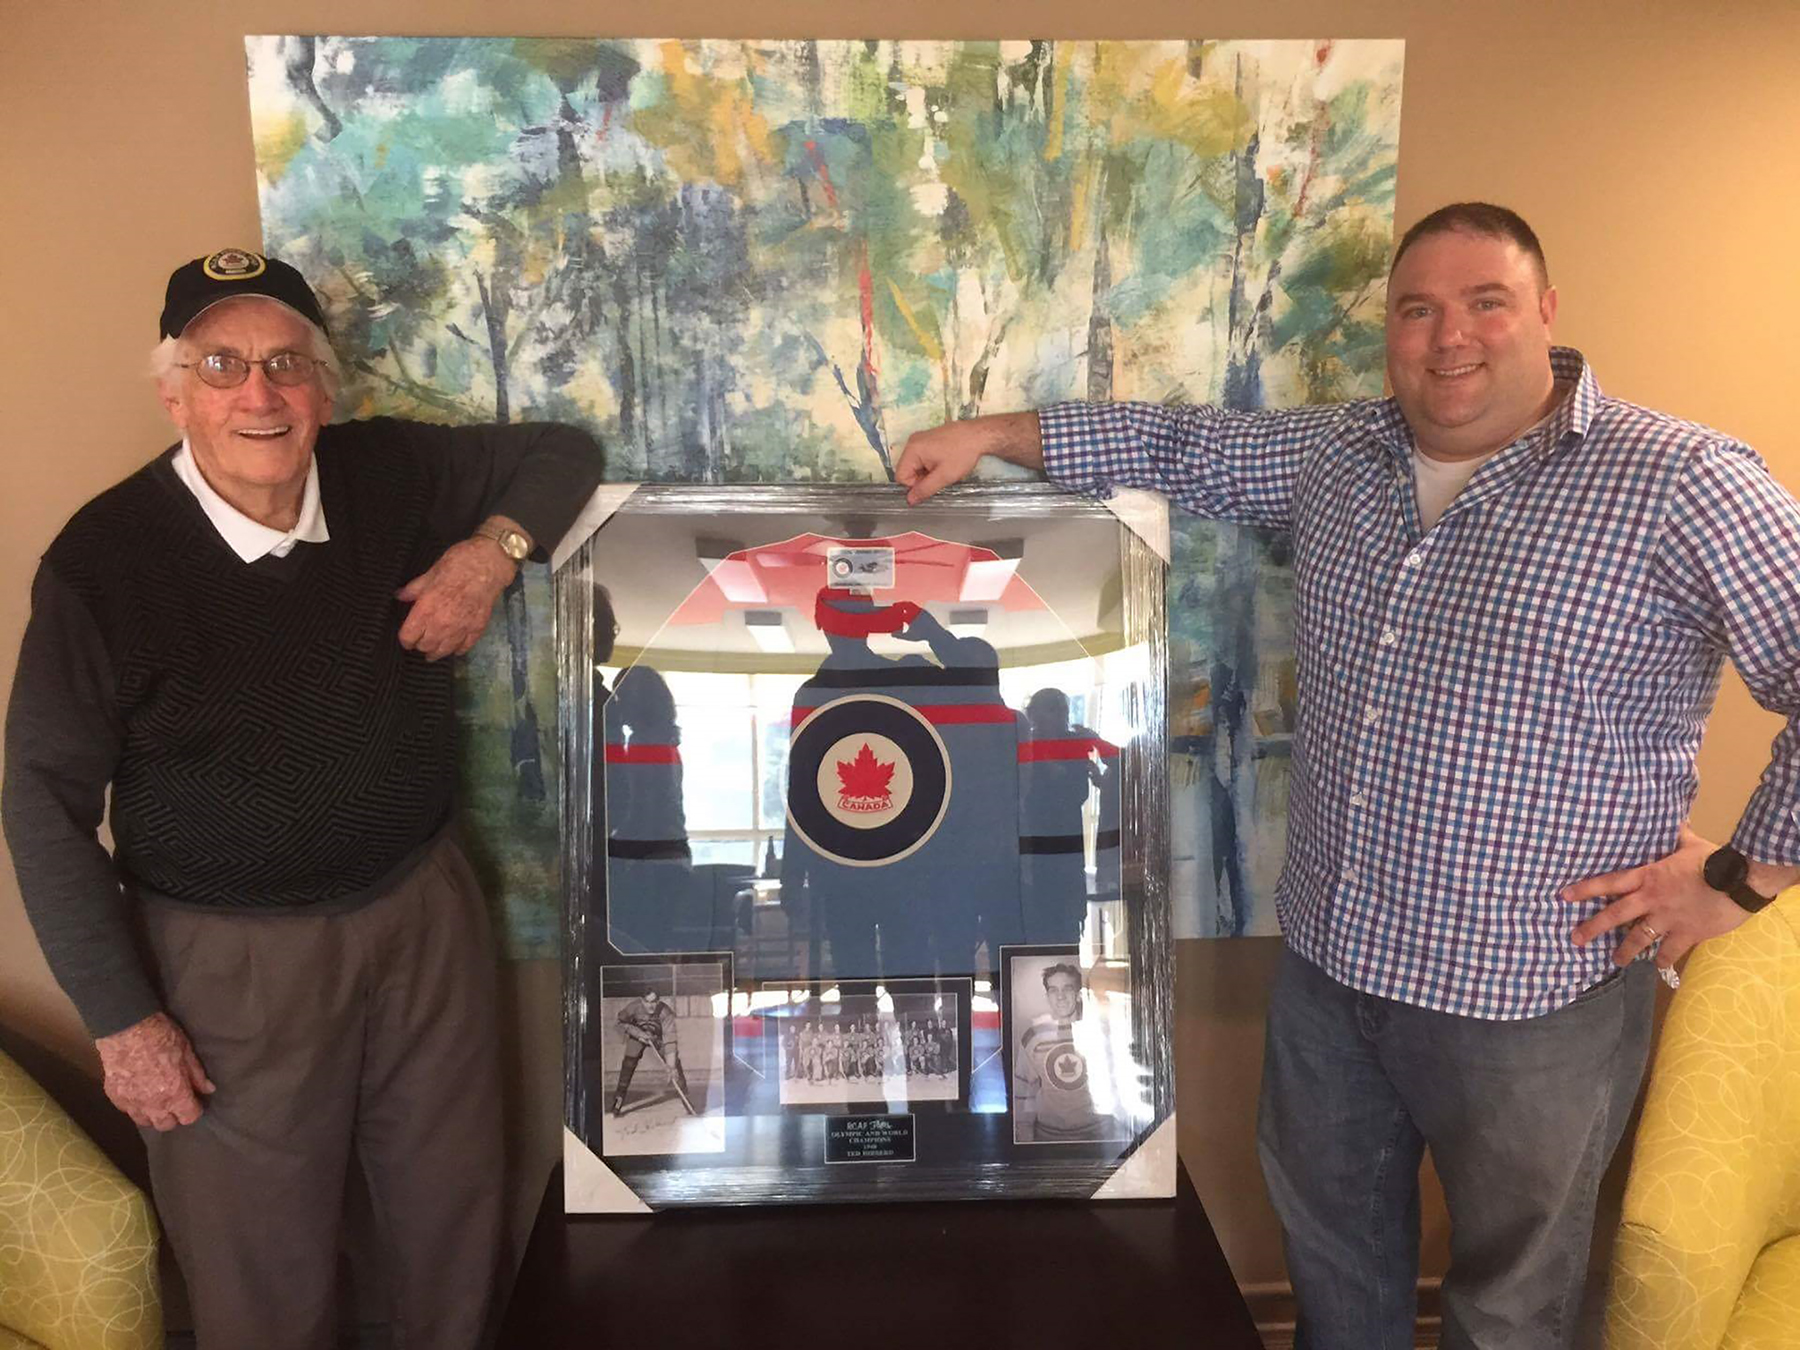 On April 22, 2016, Tim Schofield (right), Ted Hibberd's grandson-in-law, presented Mr. Hibberd with a mounted vintage Flyers jersey for his 90th birthday. PHOTO: Courtesy of Tim Schofield